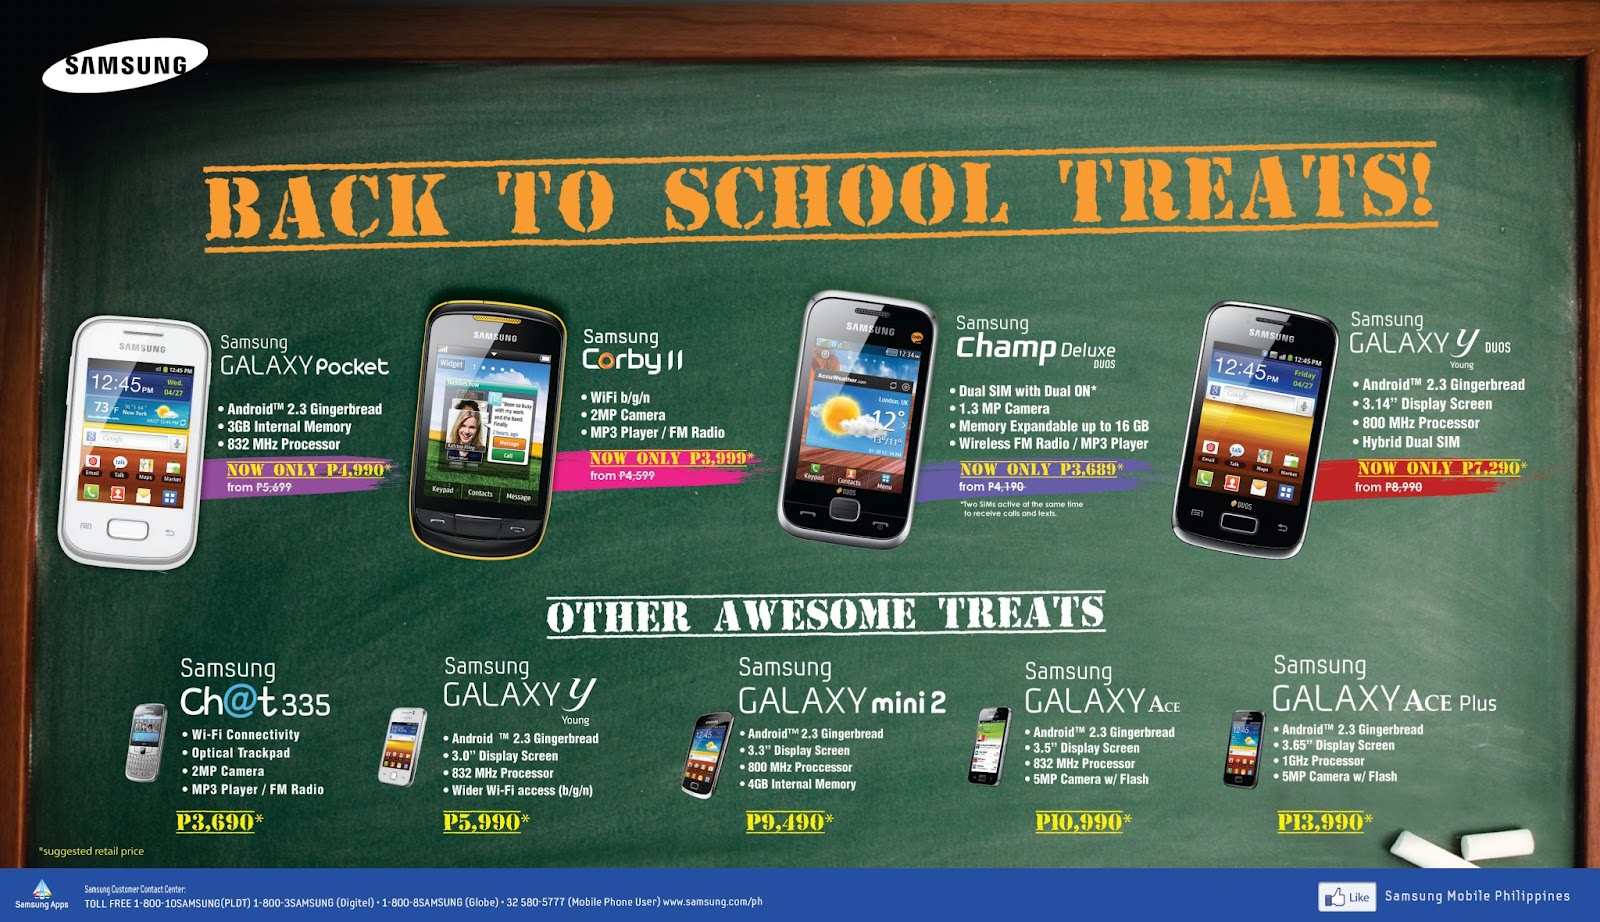 "Samsung Mobile Philippines ""BACK TO SCHOOL TREATS!"" Pricelist"